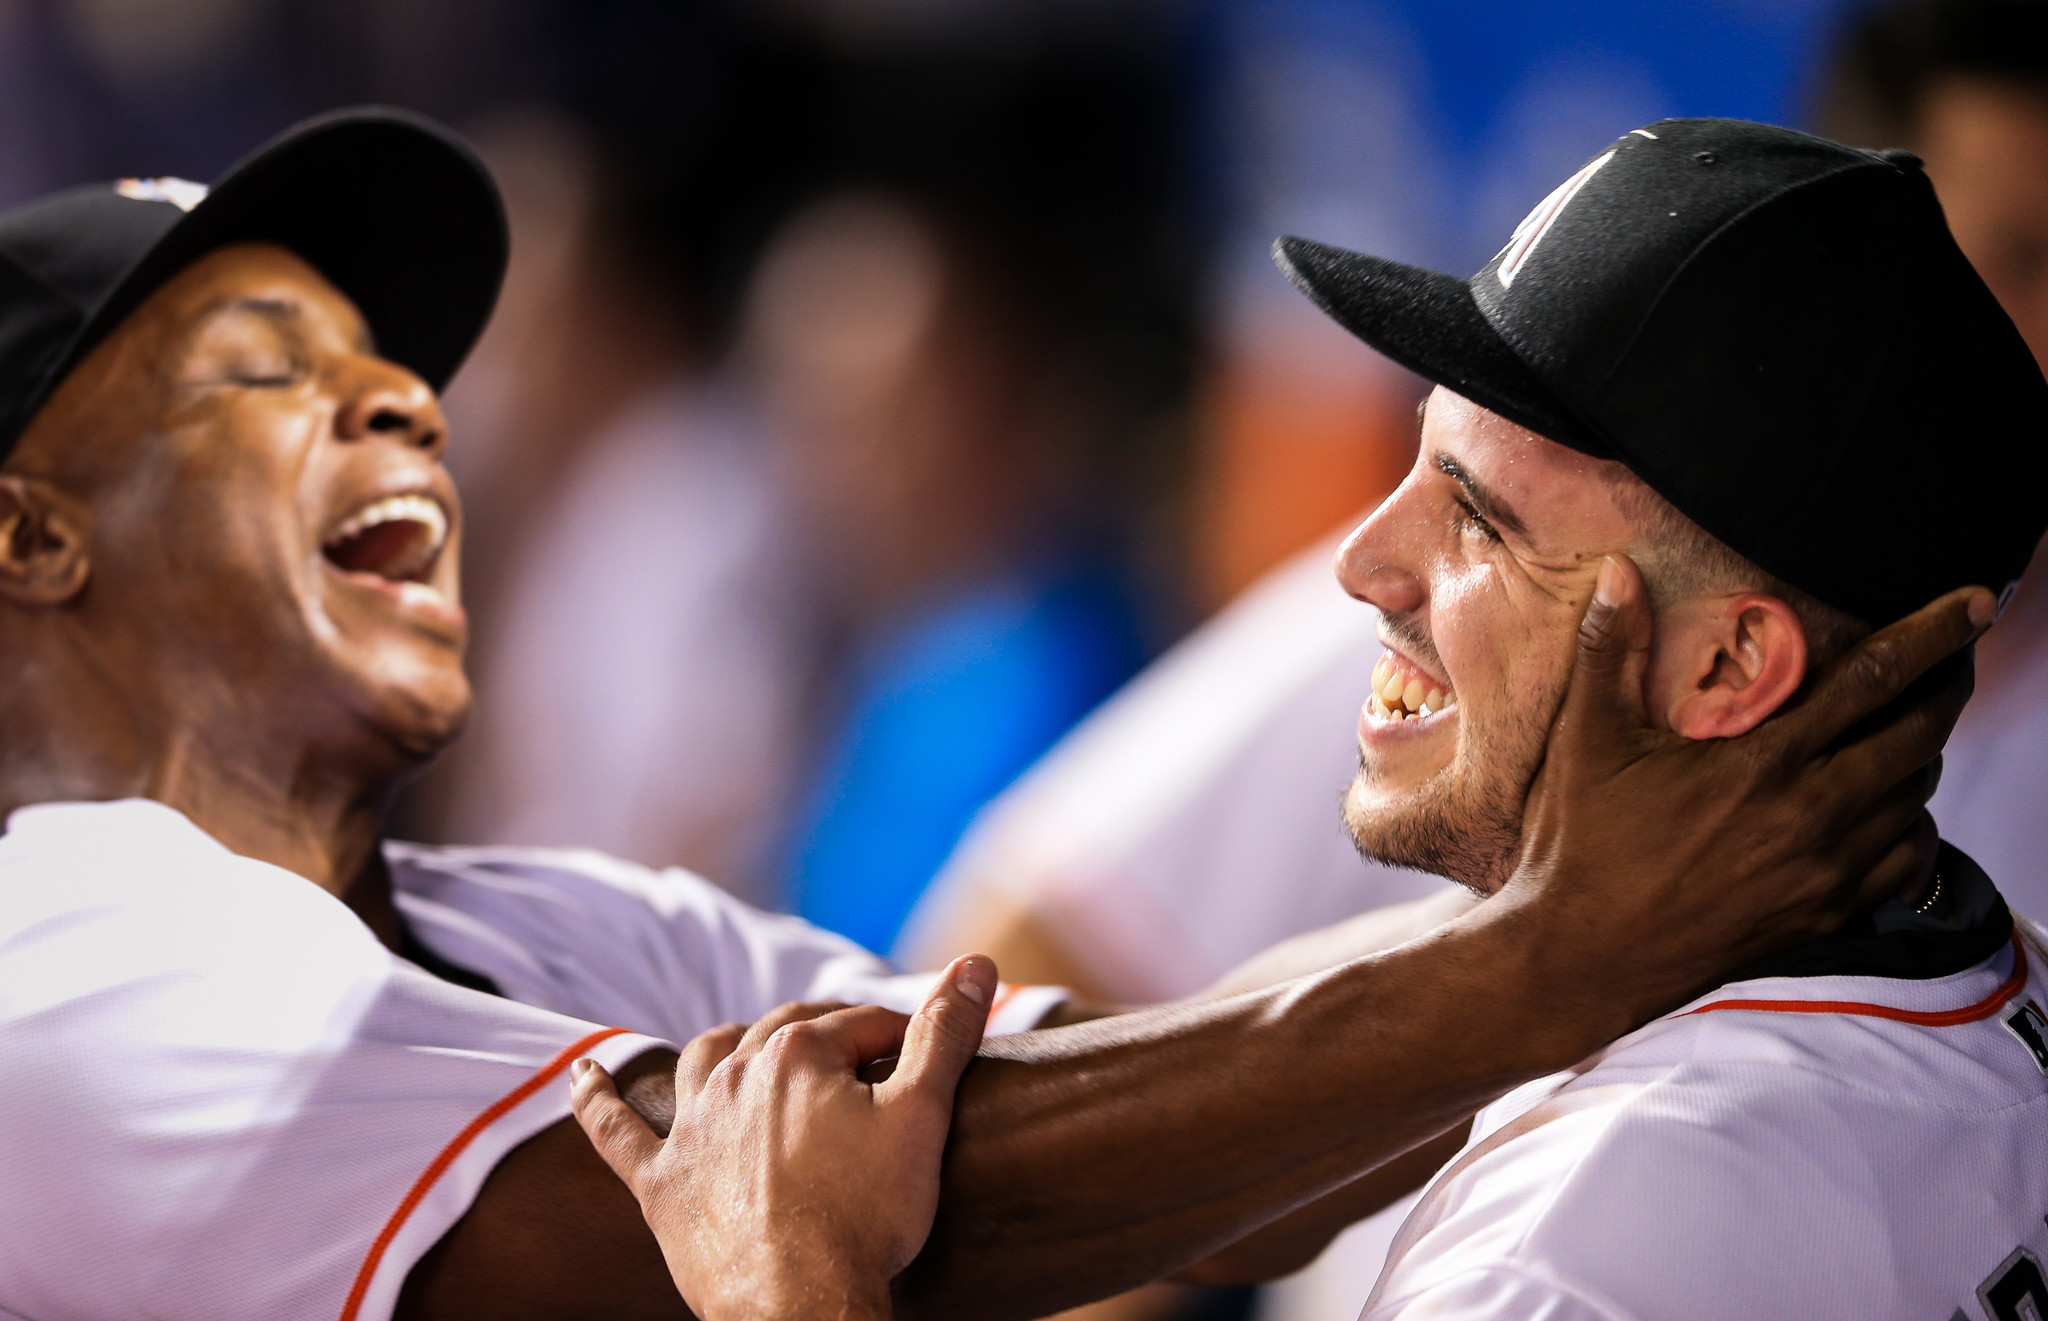 Sfl-twitter-reacts-to-the-loss-of-jose-fernandez-20160925